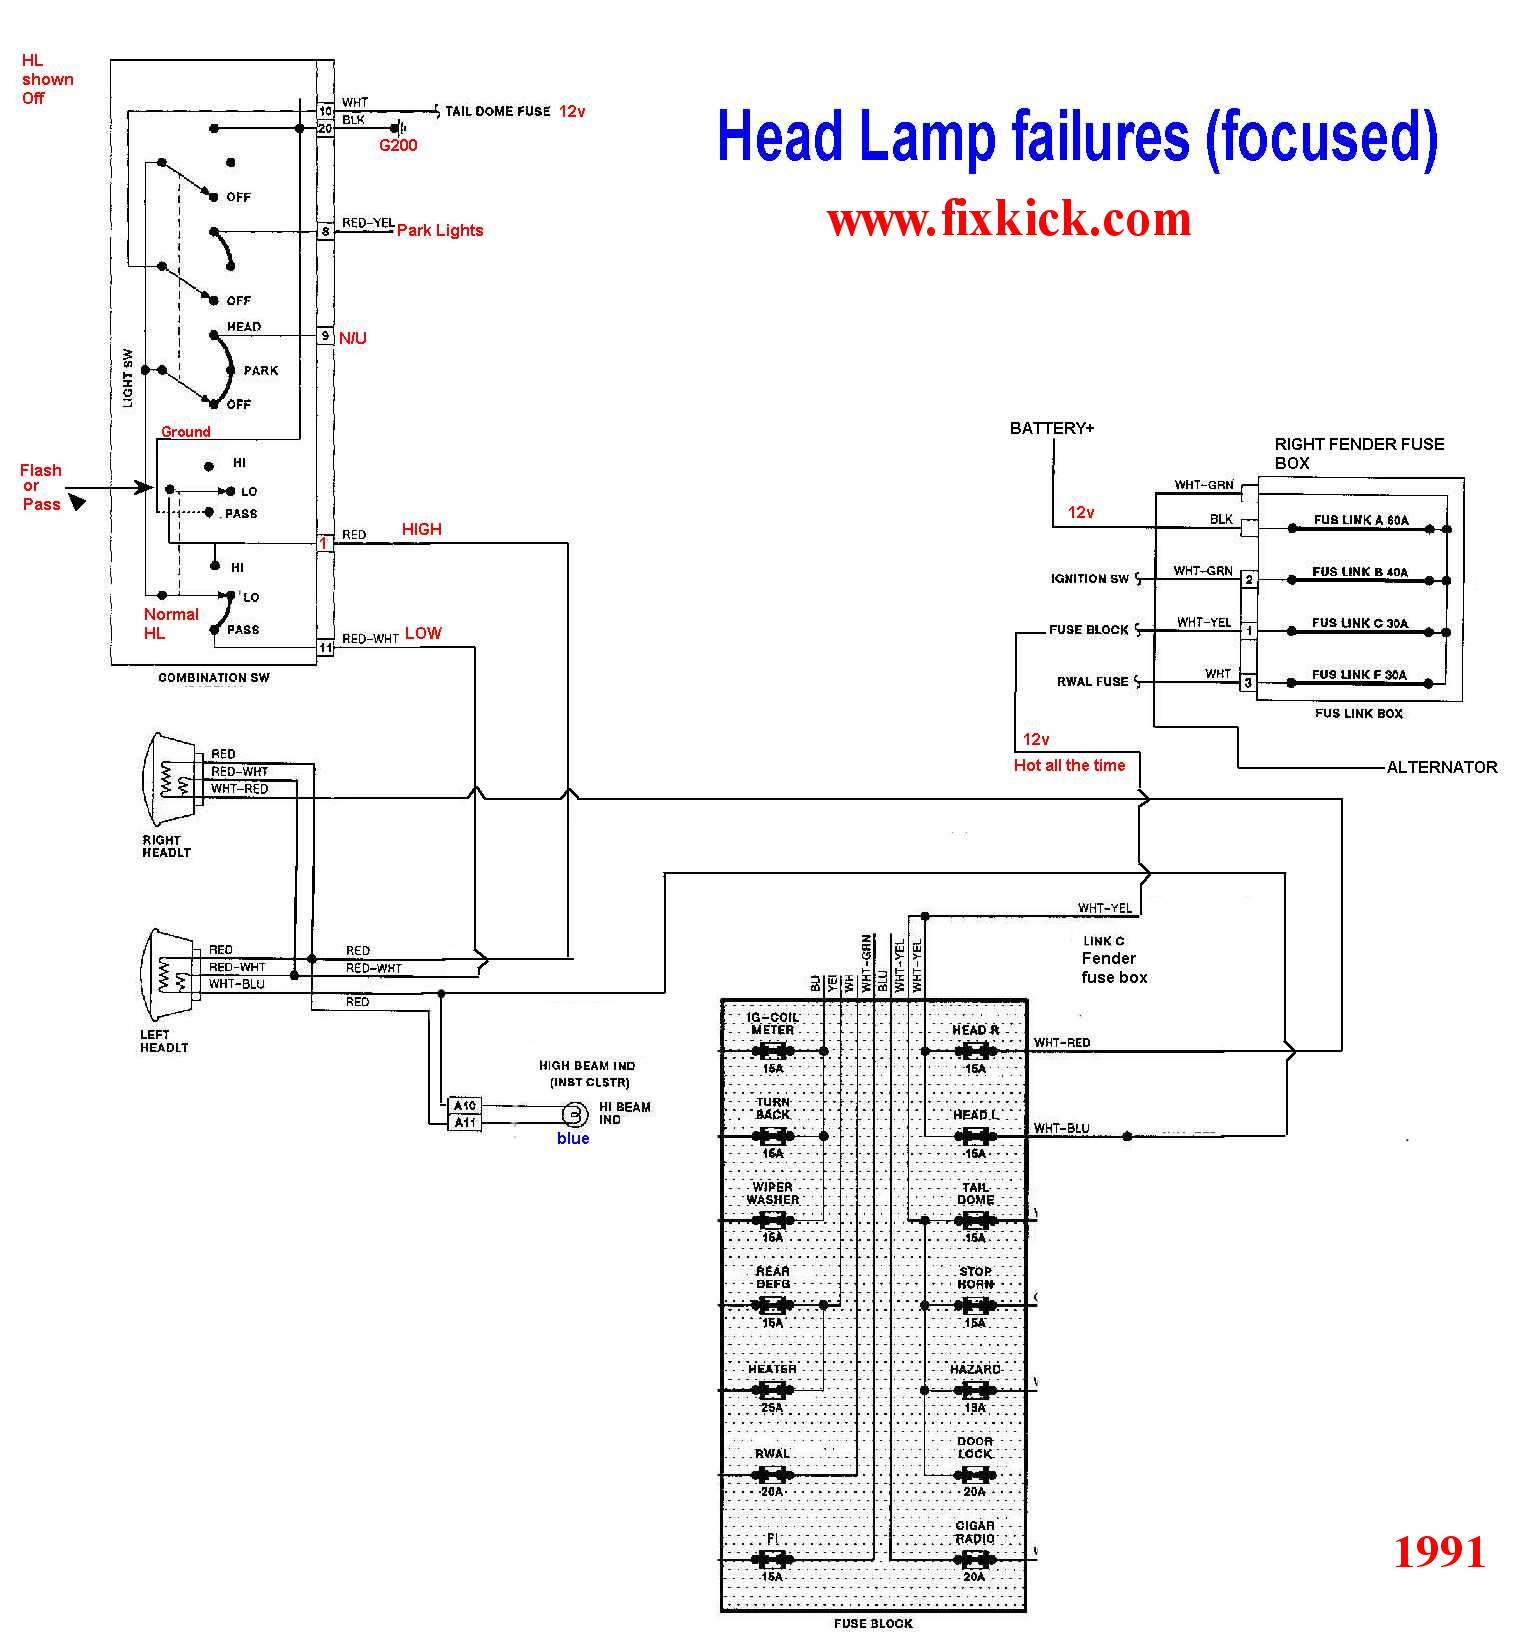 HL1A schematics to run engine 1996 geo metro wiring diagram at bakdesigns.co